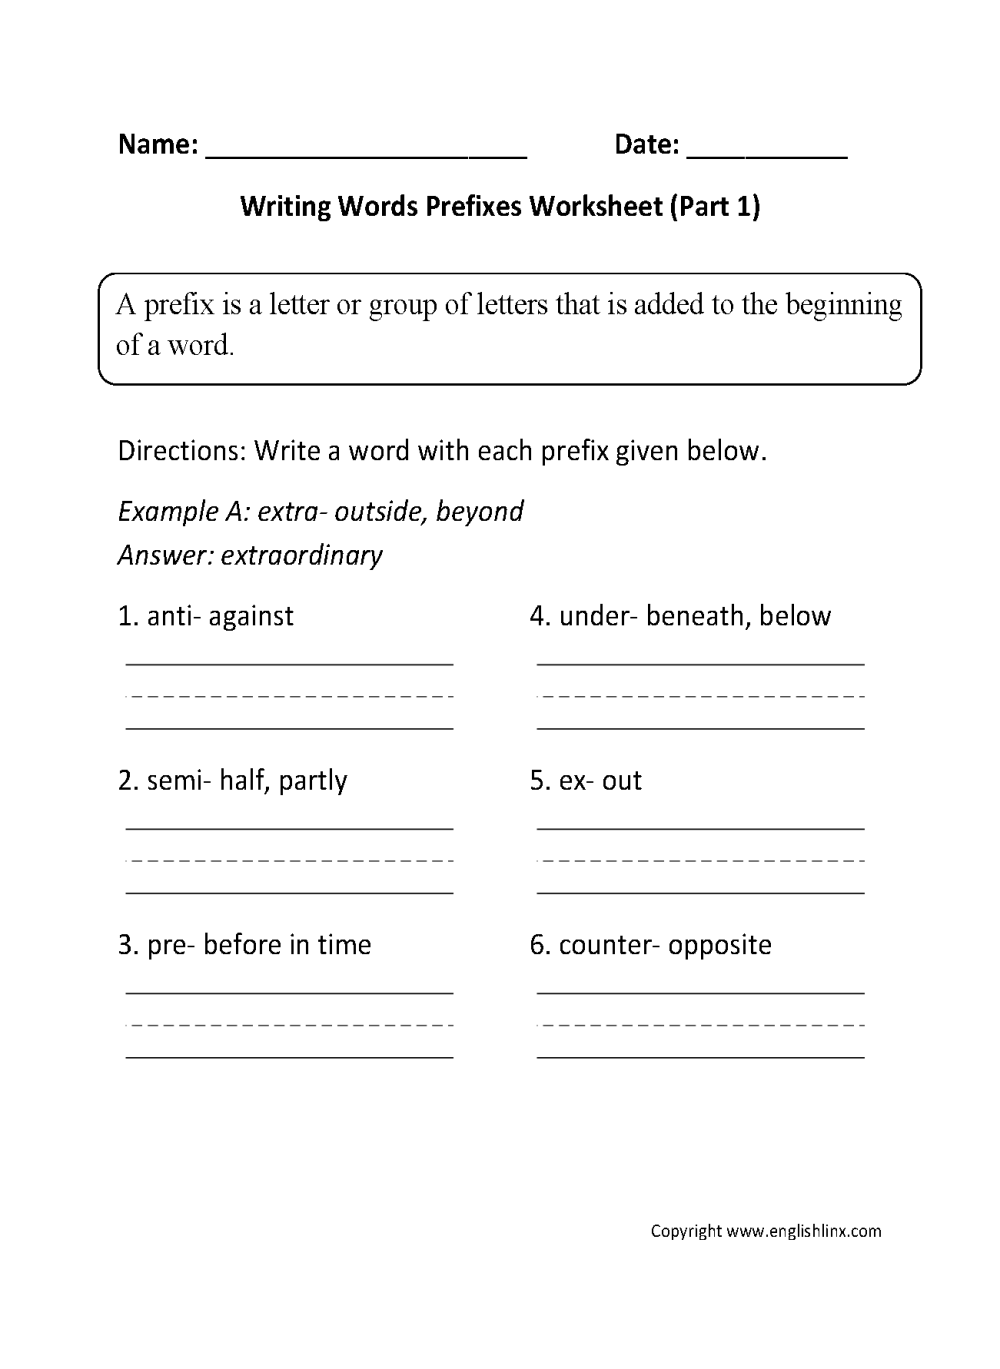 medium resolution of Prefixes Worksheets   Writing Words Prefixes Worksheet Part 1